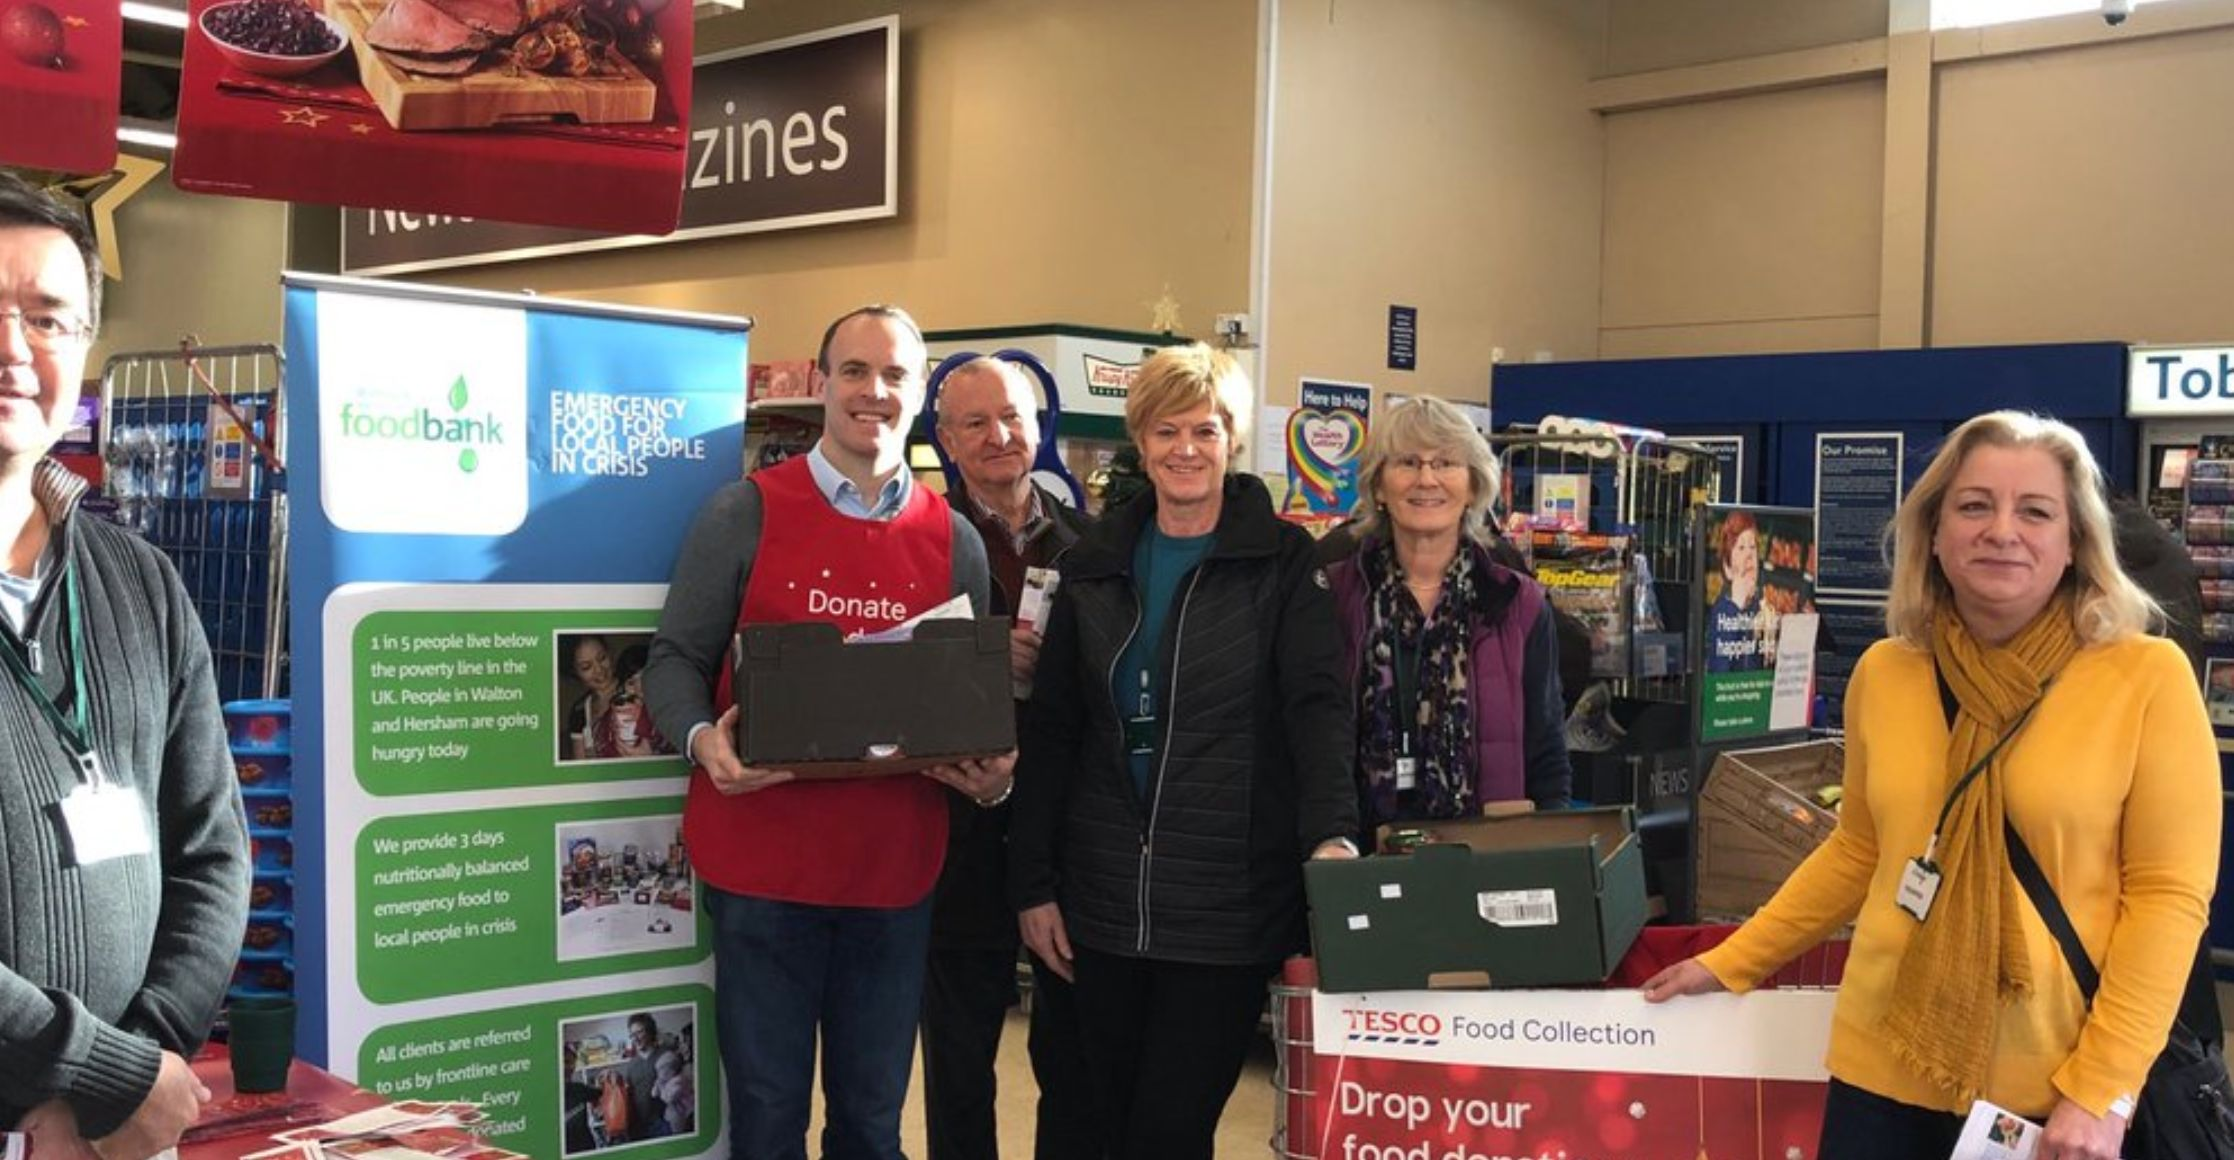 Dominic Raab Criticised For Foodbank Appeal After 'Cash Flow'